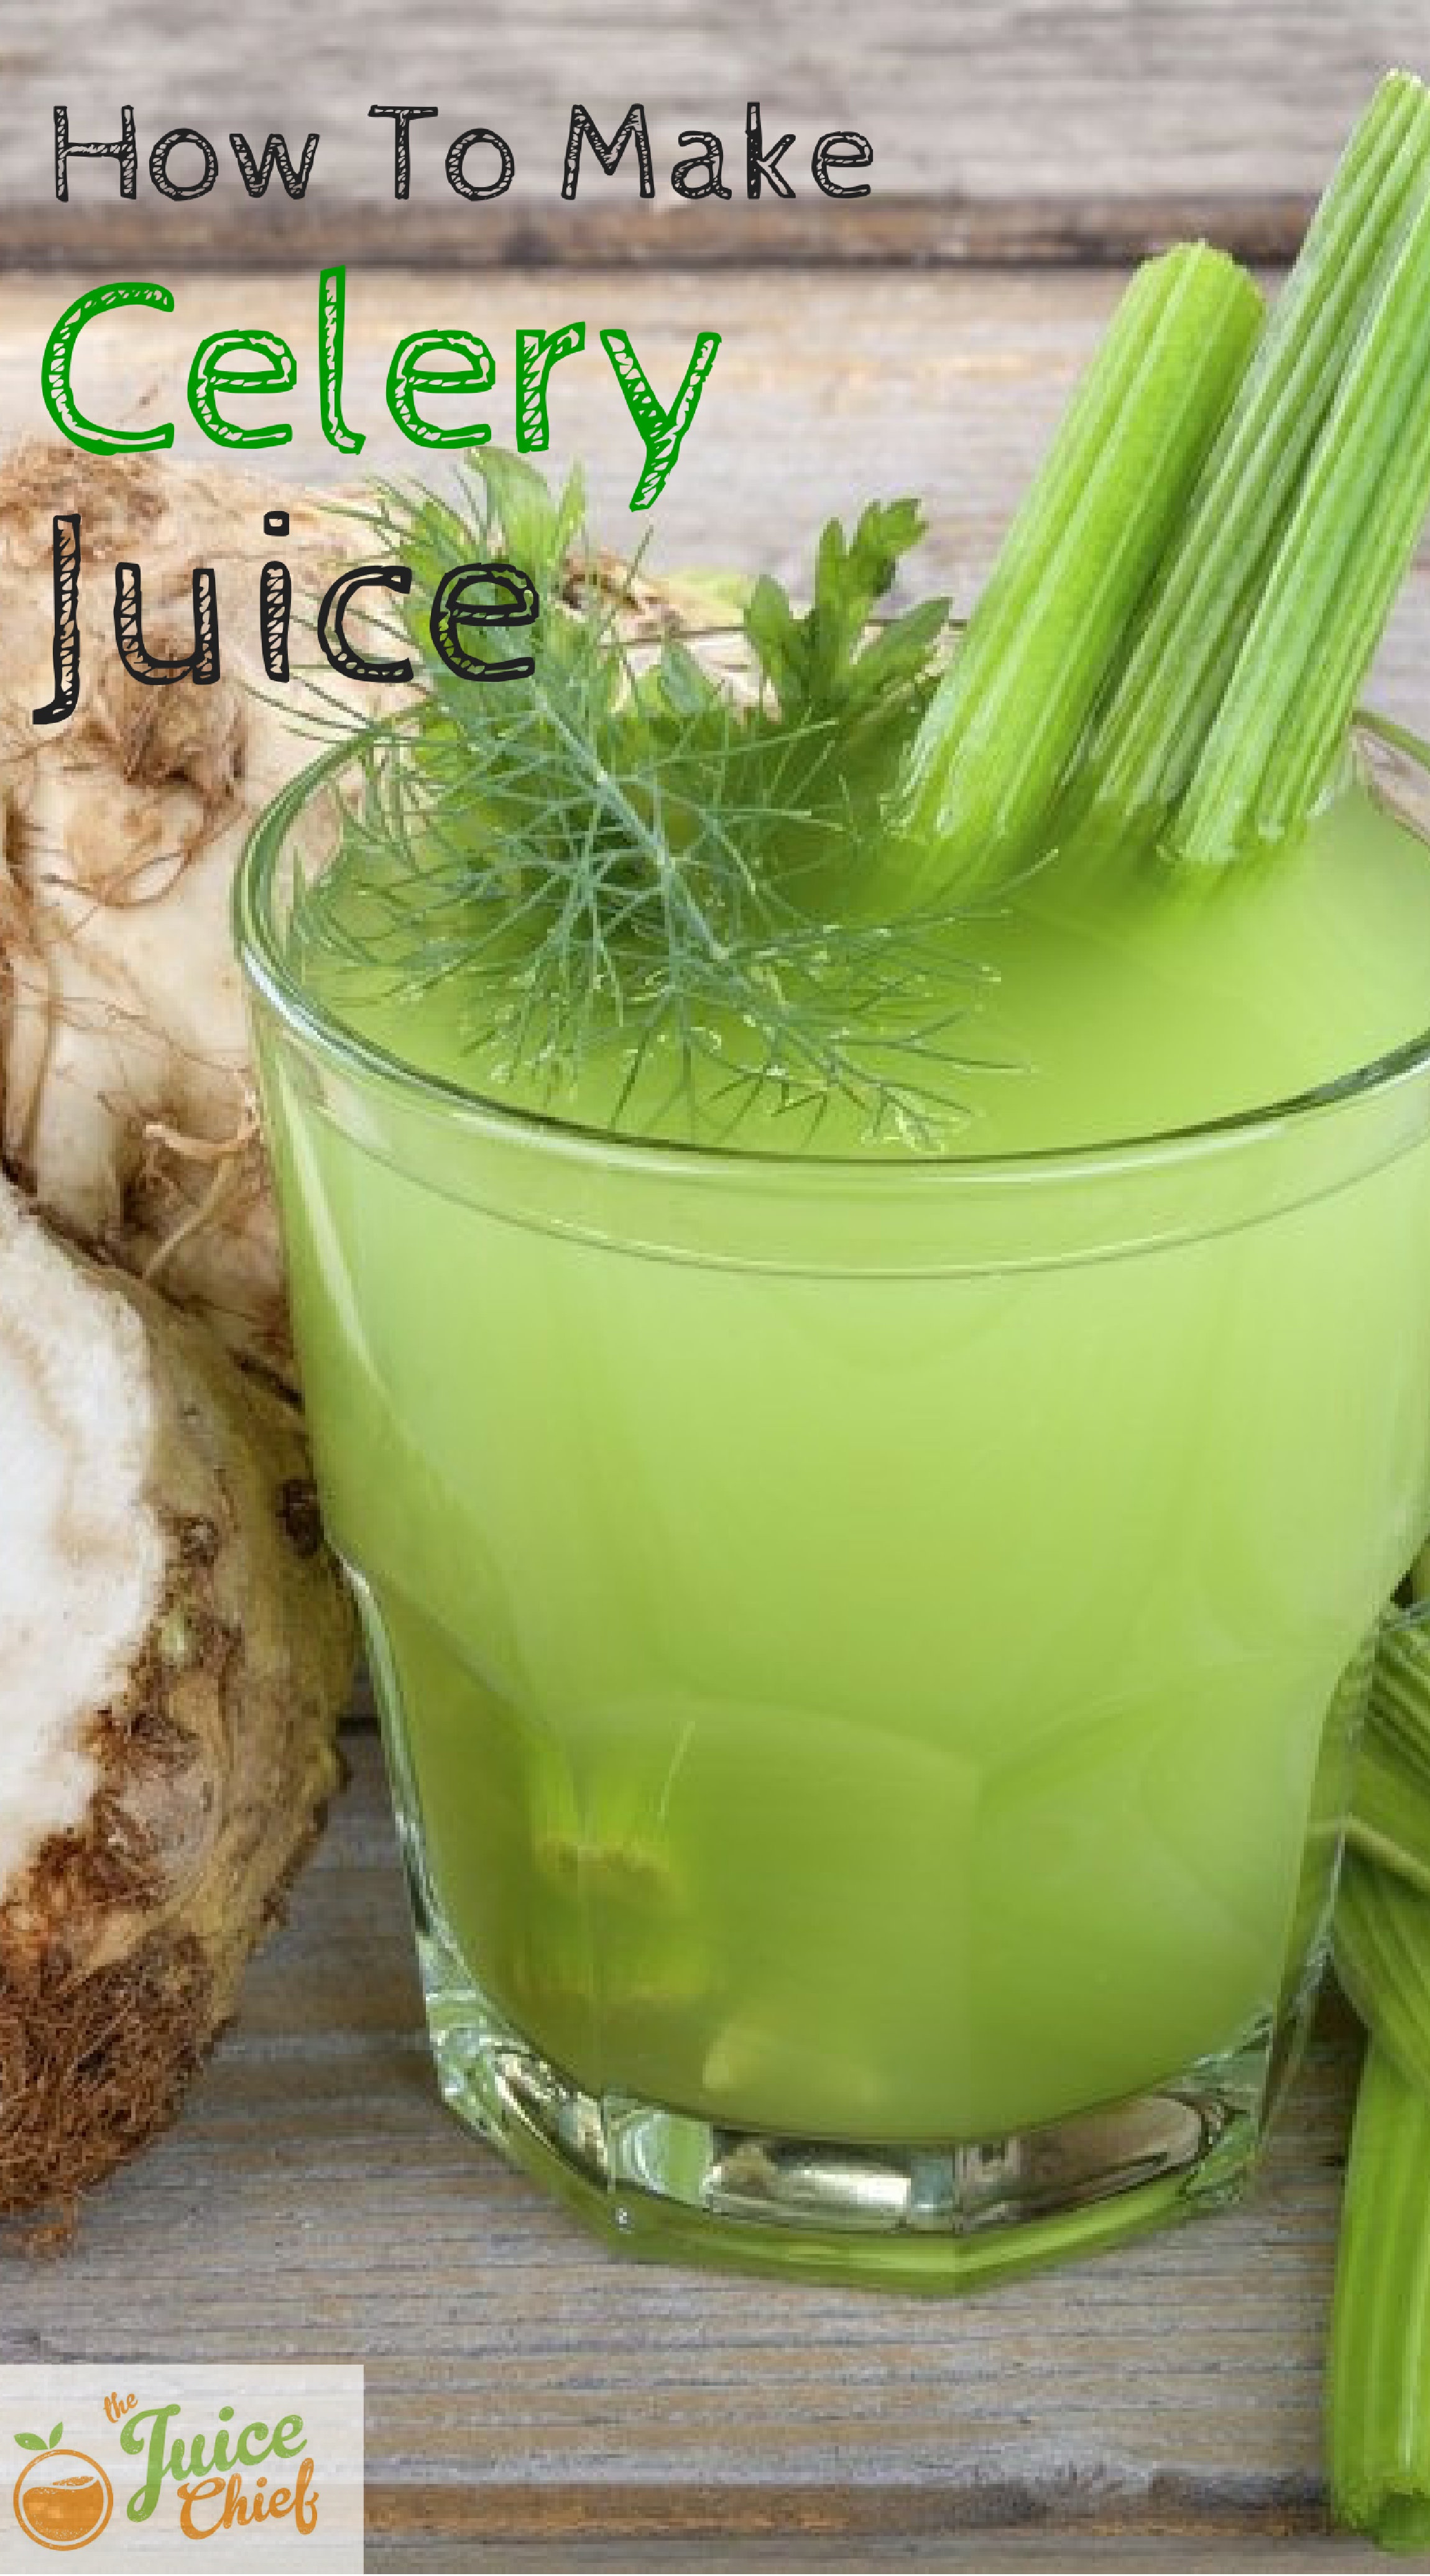 Forum on this topic: How to Make Celery Juice, how-to-make-celery-juice/